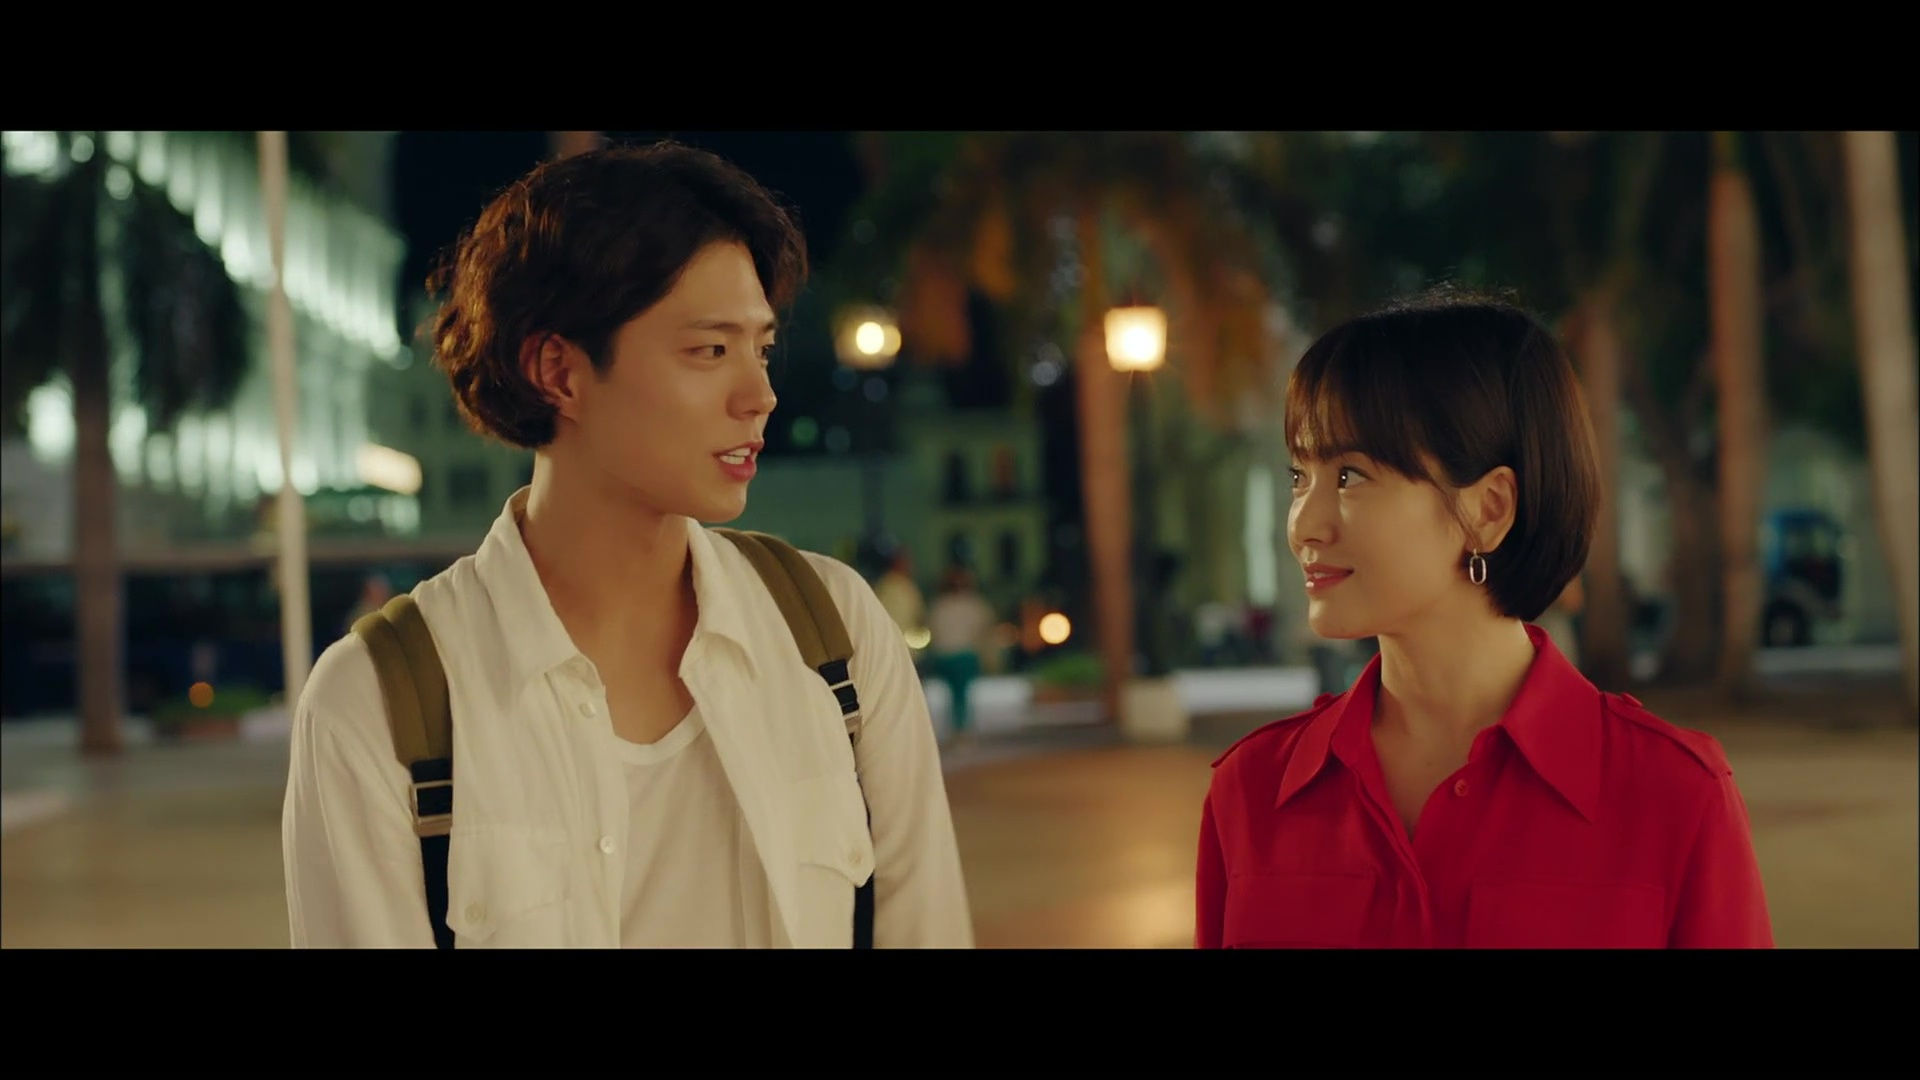 """Good Ol' Review: Park Bo Gum and Song Hye Kyo Make This """"Encounter"""" One Worth Having"""